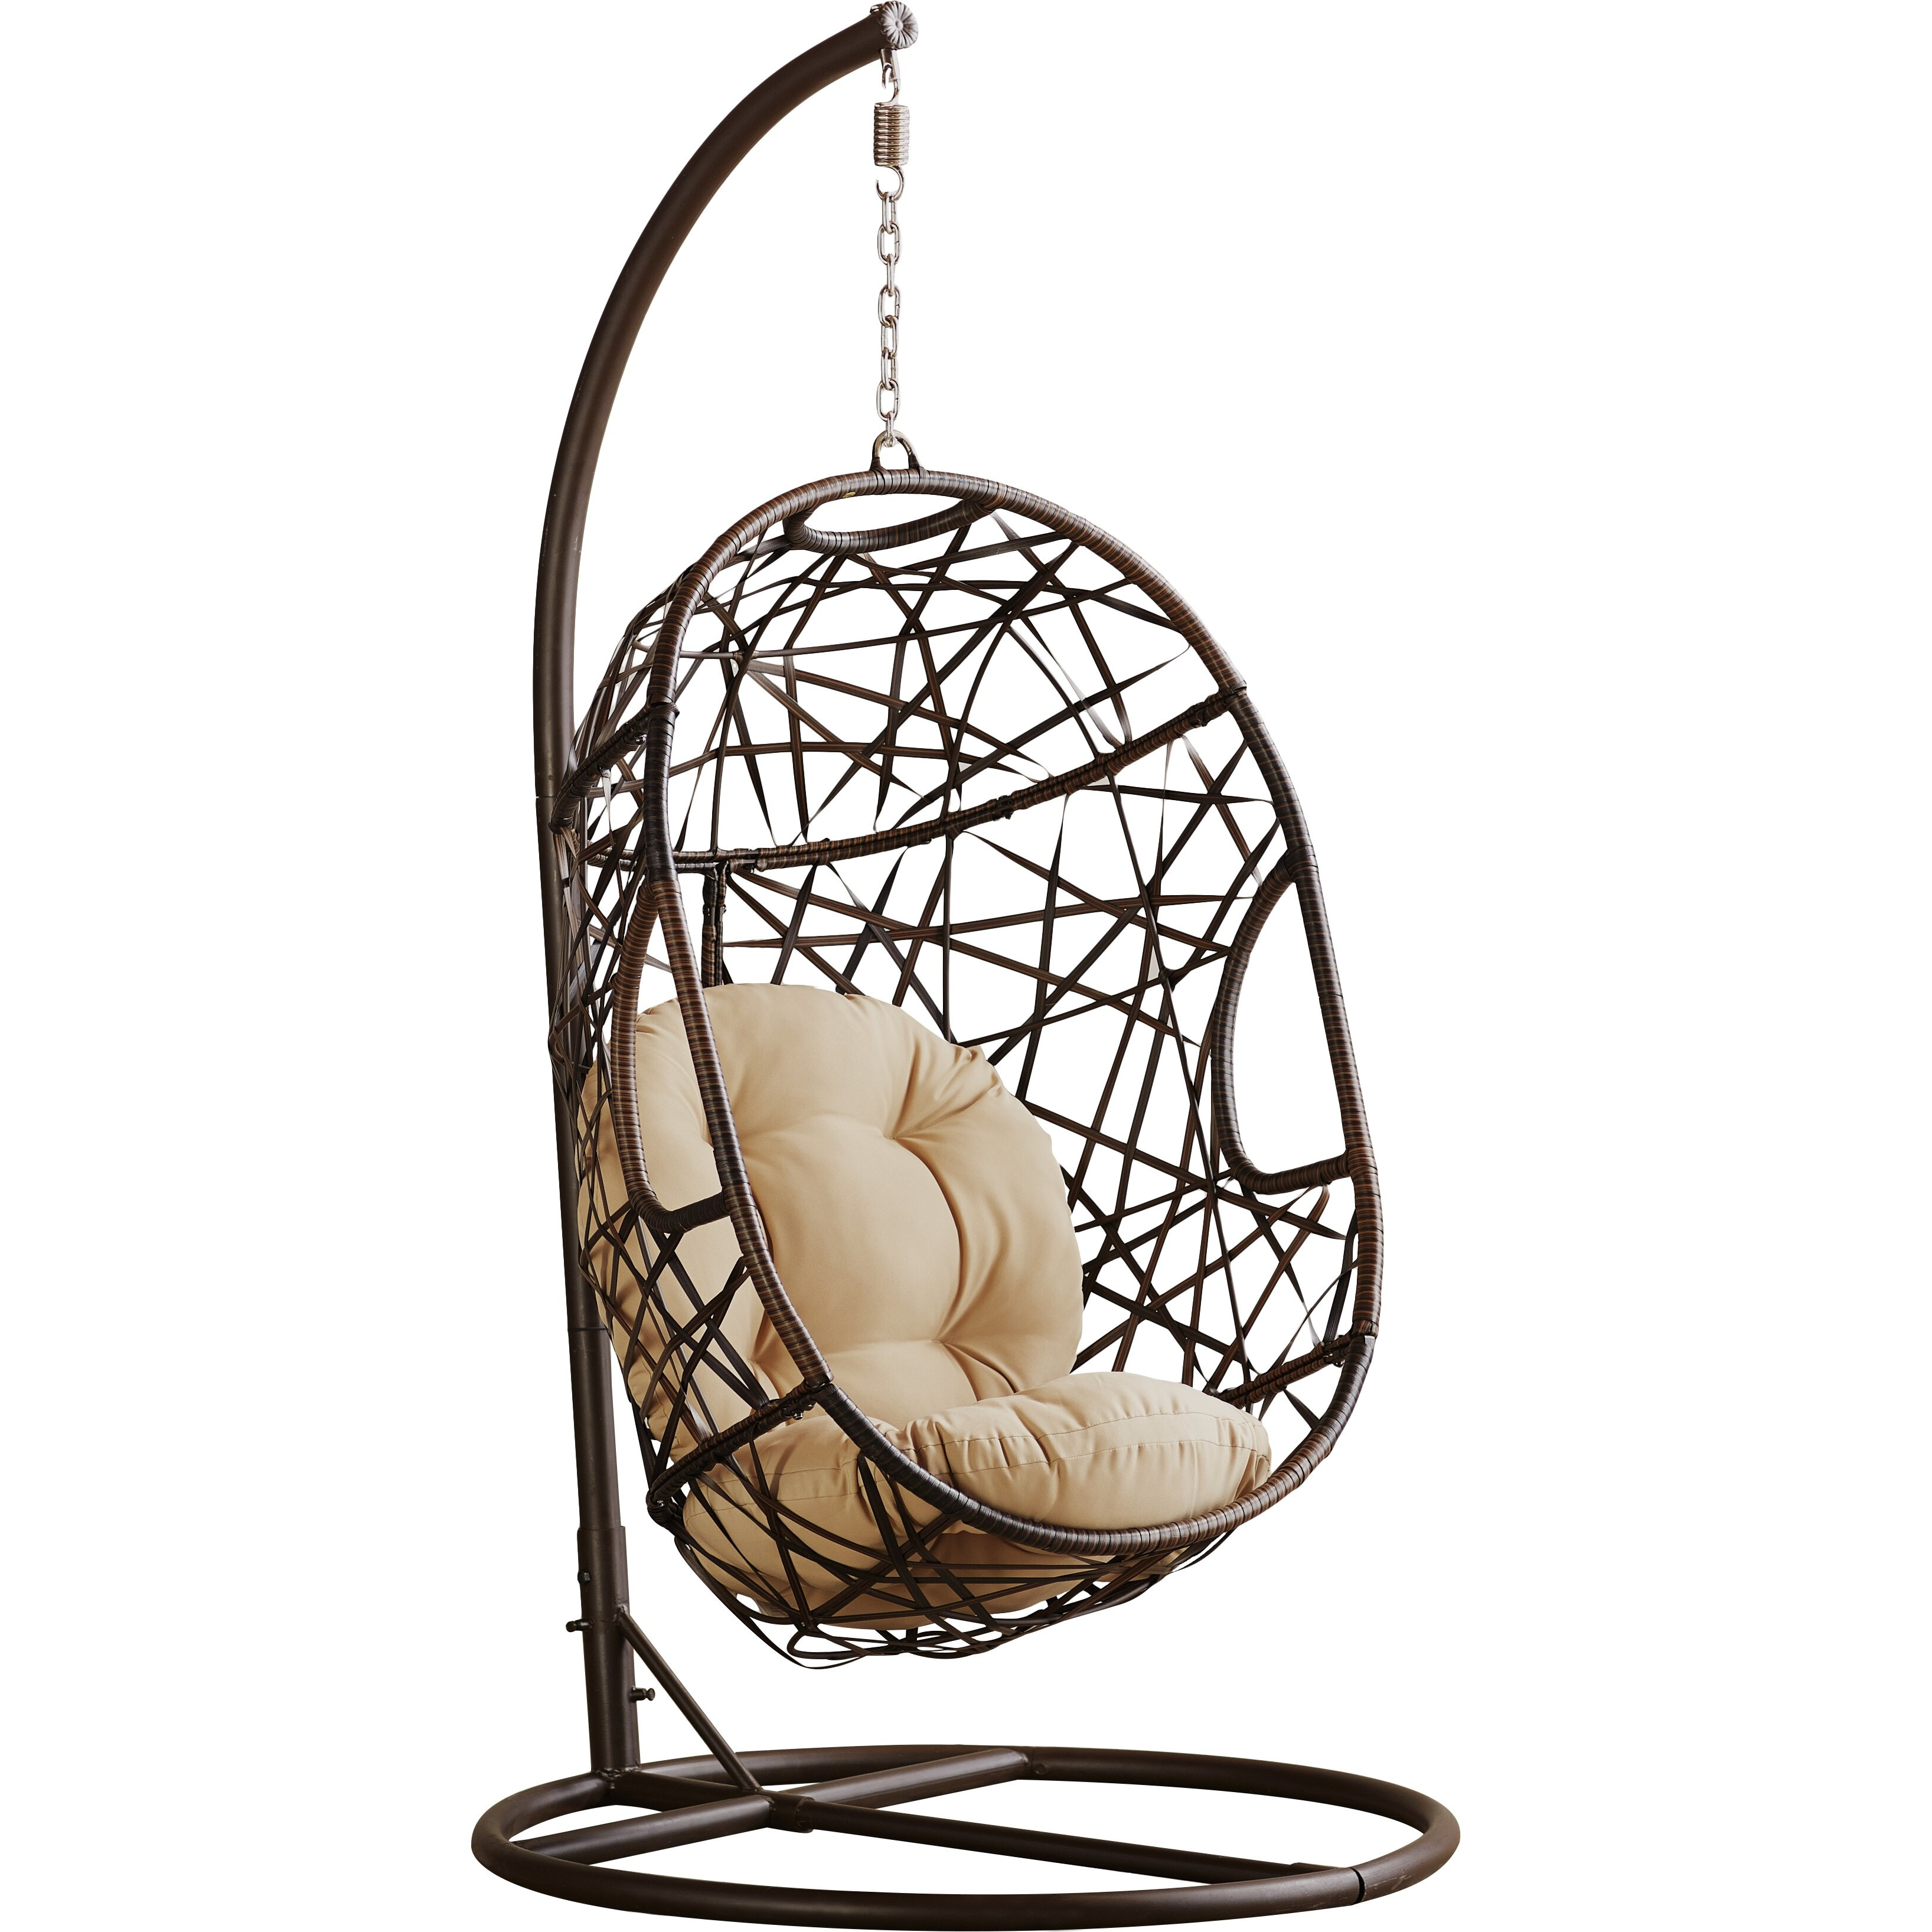 Outdoor swing chair with stand - Duncombe Egg Shaped Outdoor Swing Chair With Stand Reviews